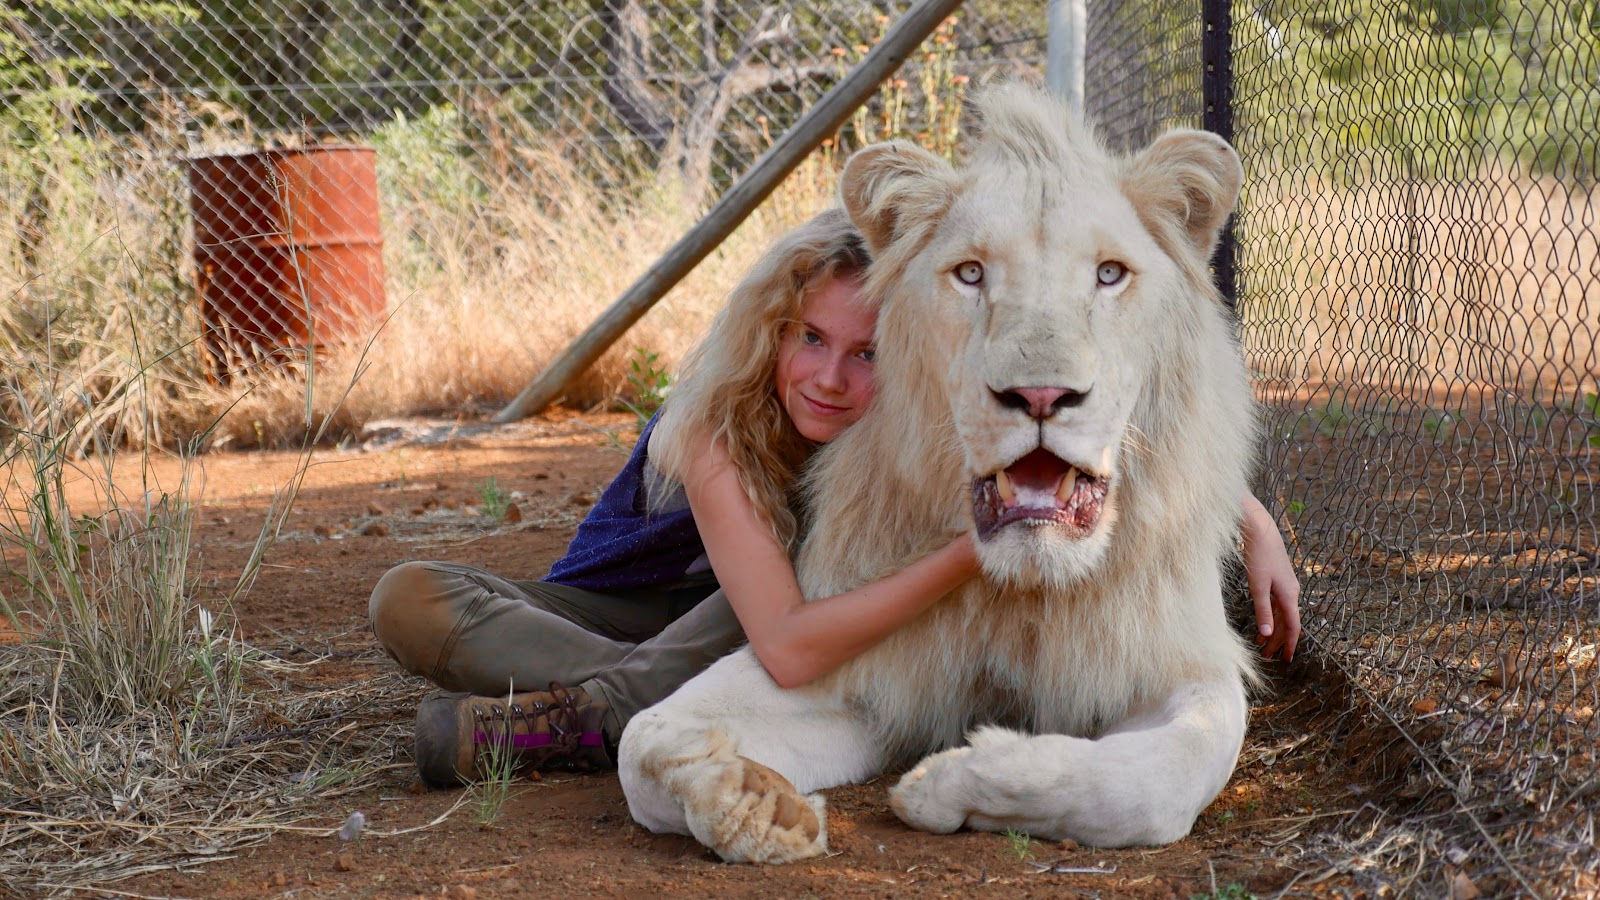 Movie still showing actress Daniah De Villiers with her white lion.